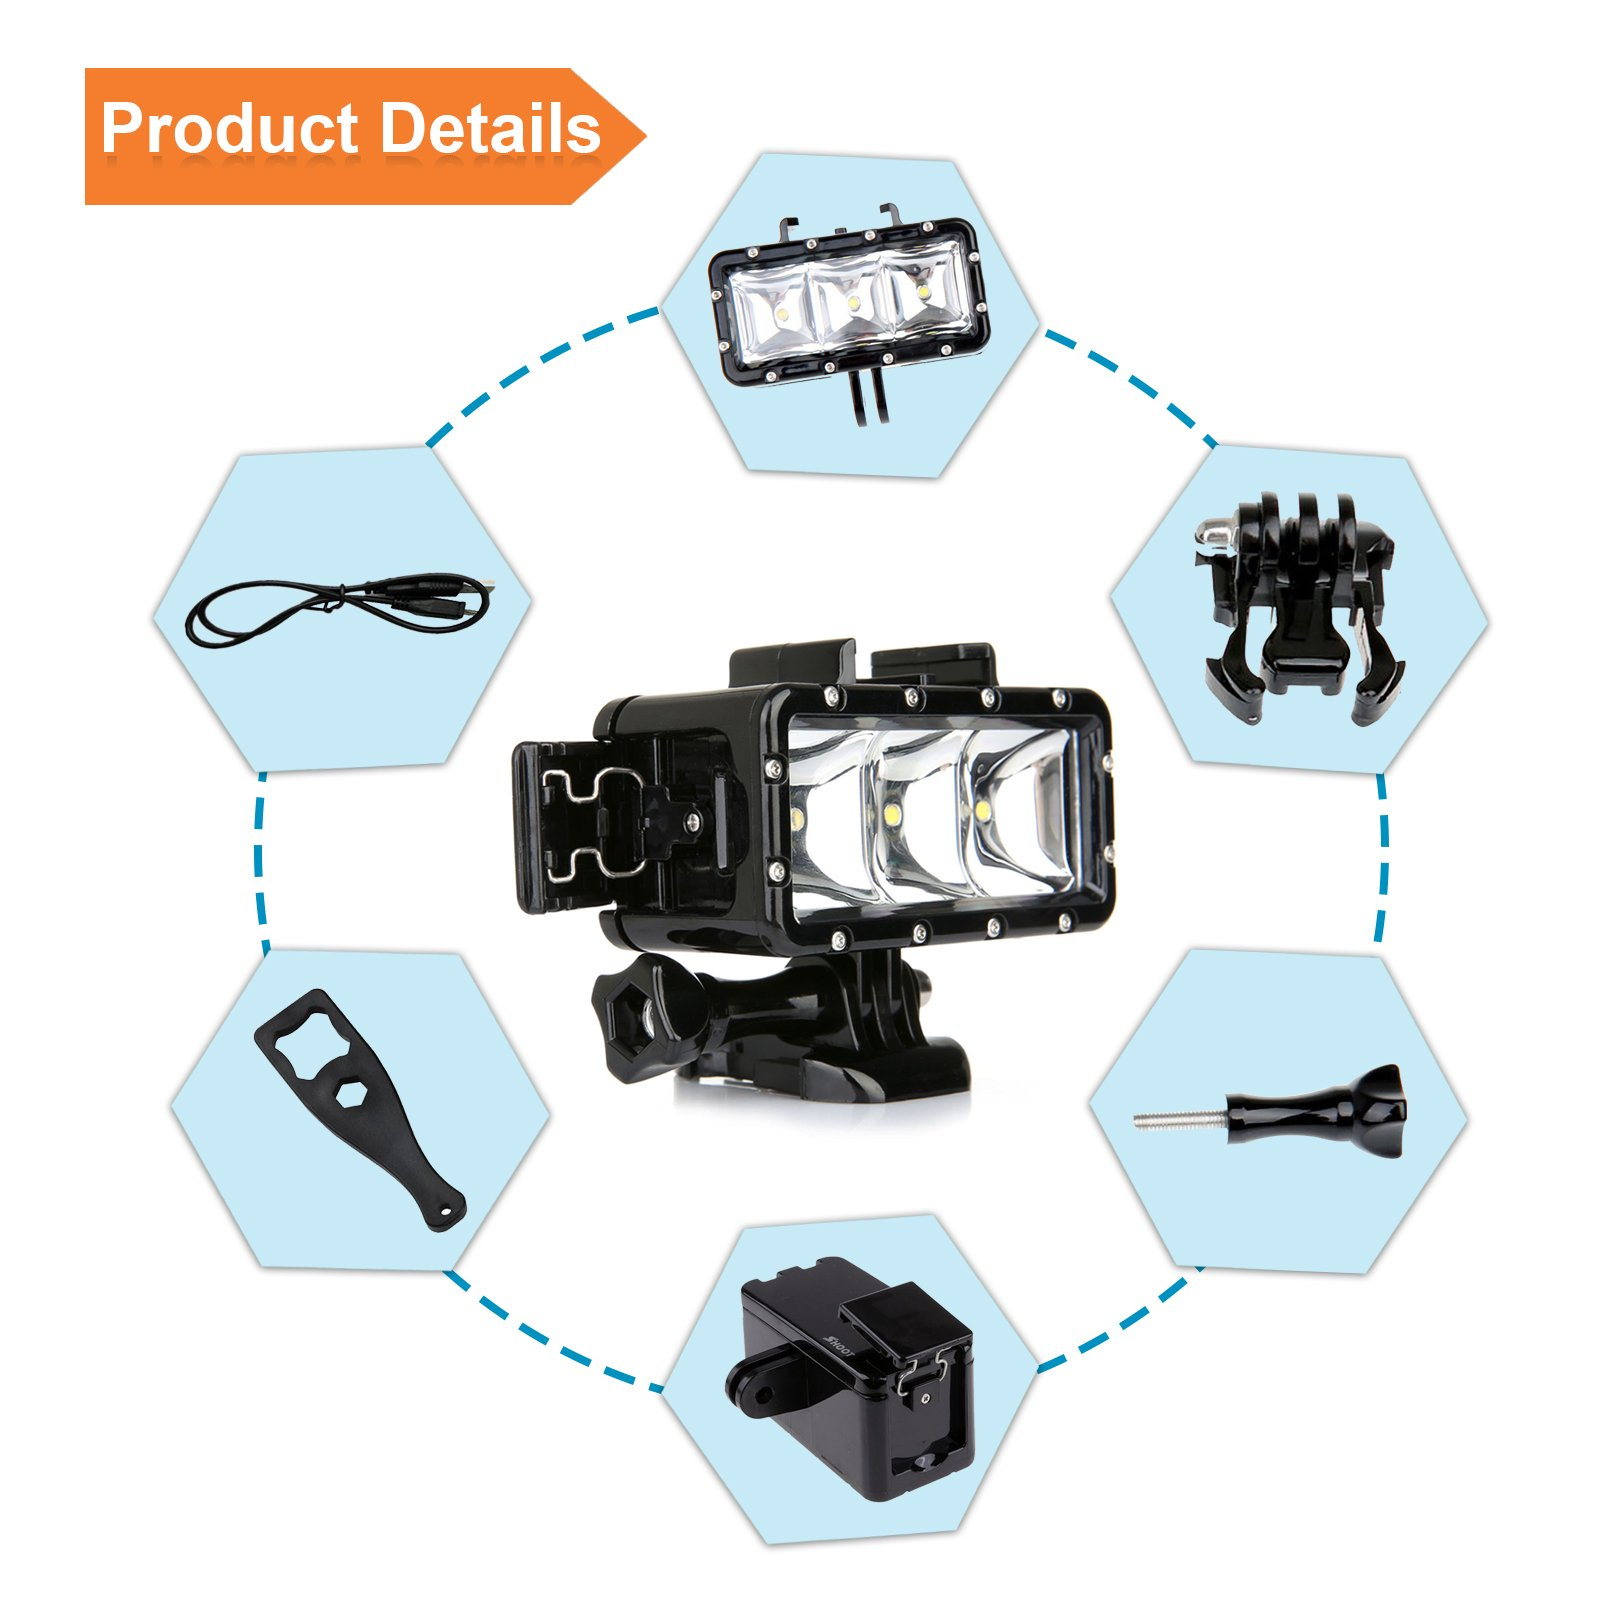 SHOOT Waterproof 30m Diving Light High Power Dimmable LED Underwater Fill Light for GoPro Hero 6/5/5S/4/4S/3+,Campark AKASO DBPOWER Crosstour SHOOT Camera with 1200mAh Built-in Rechargeable Battery by SHOOT (Image #5)